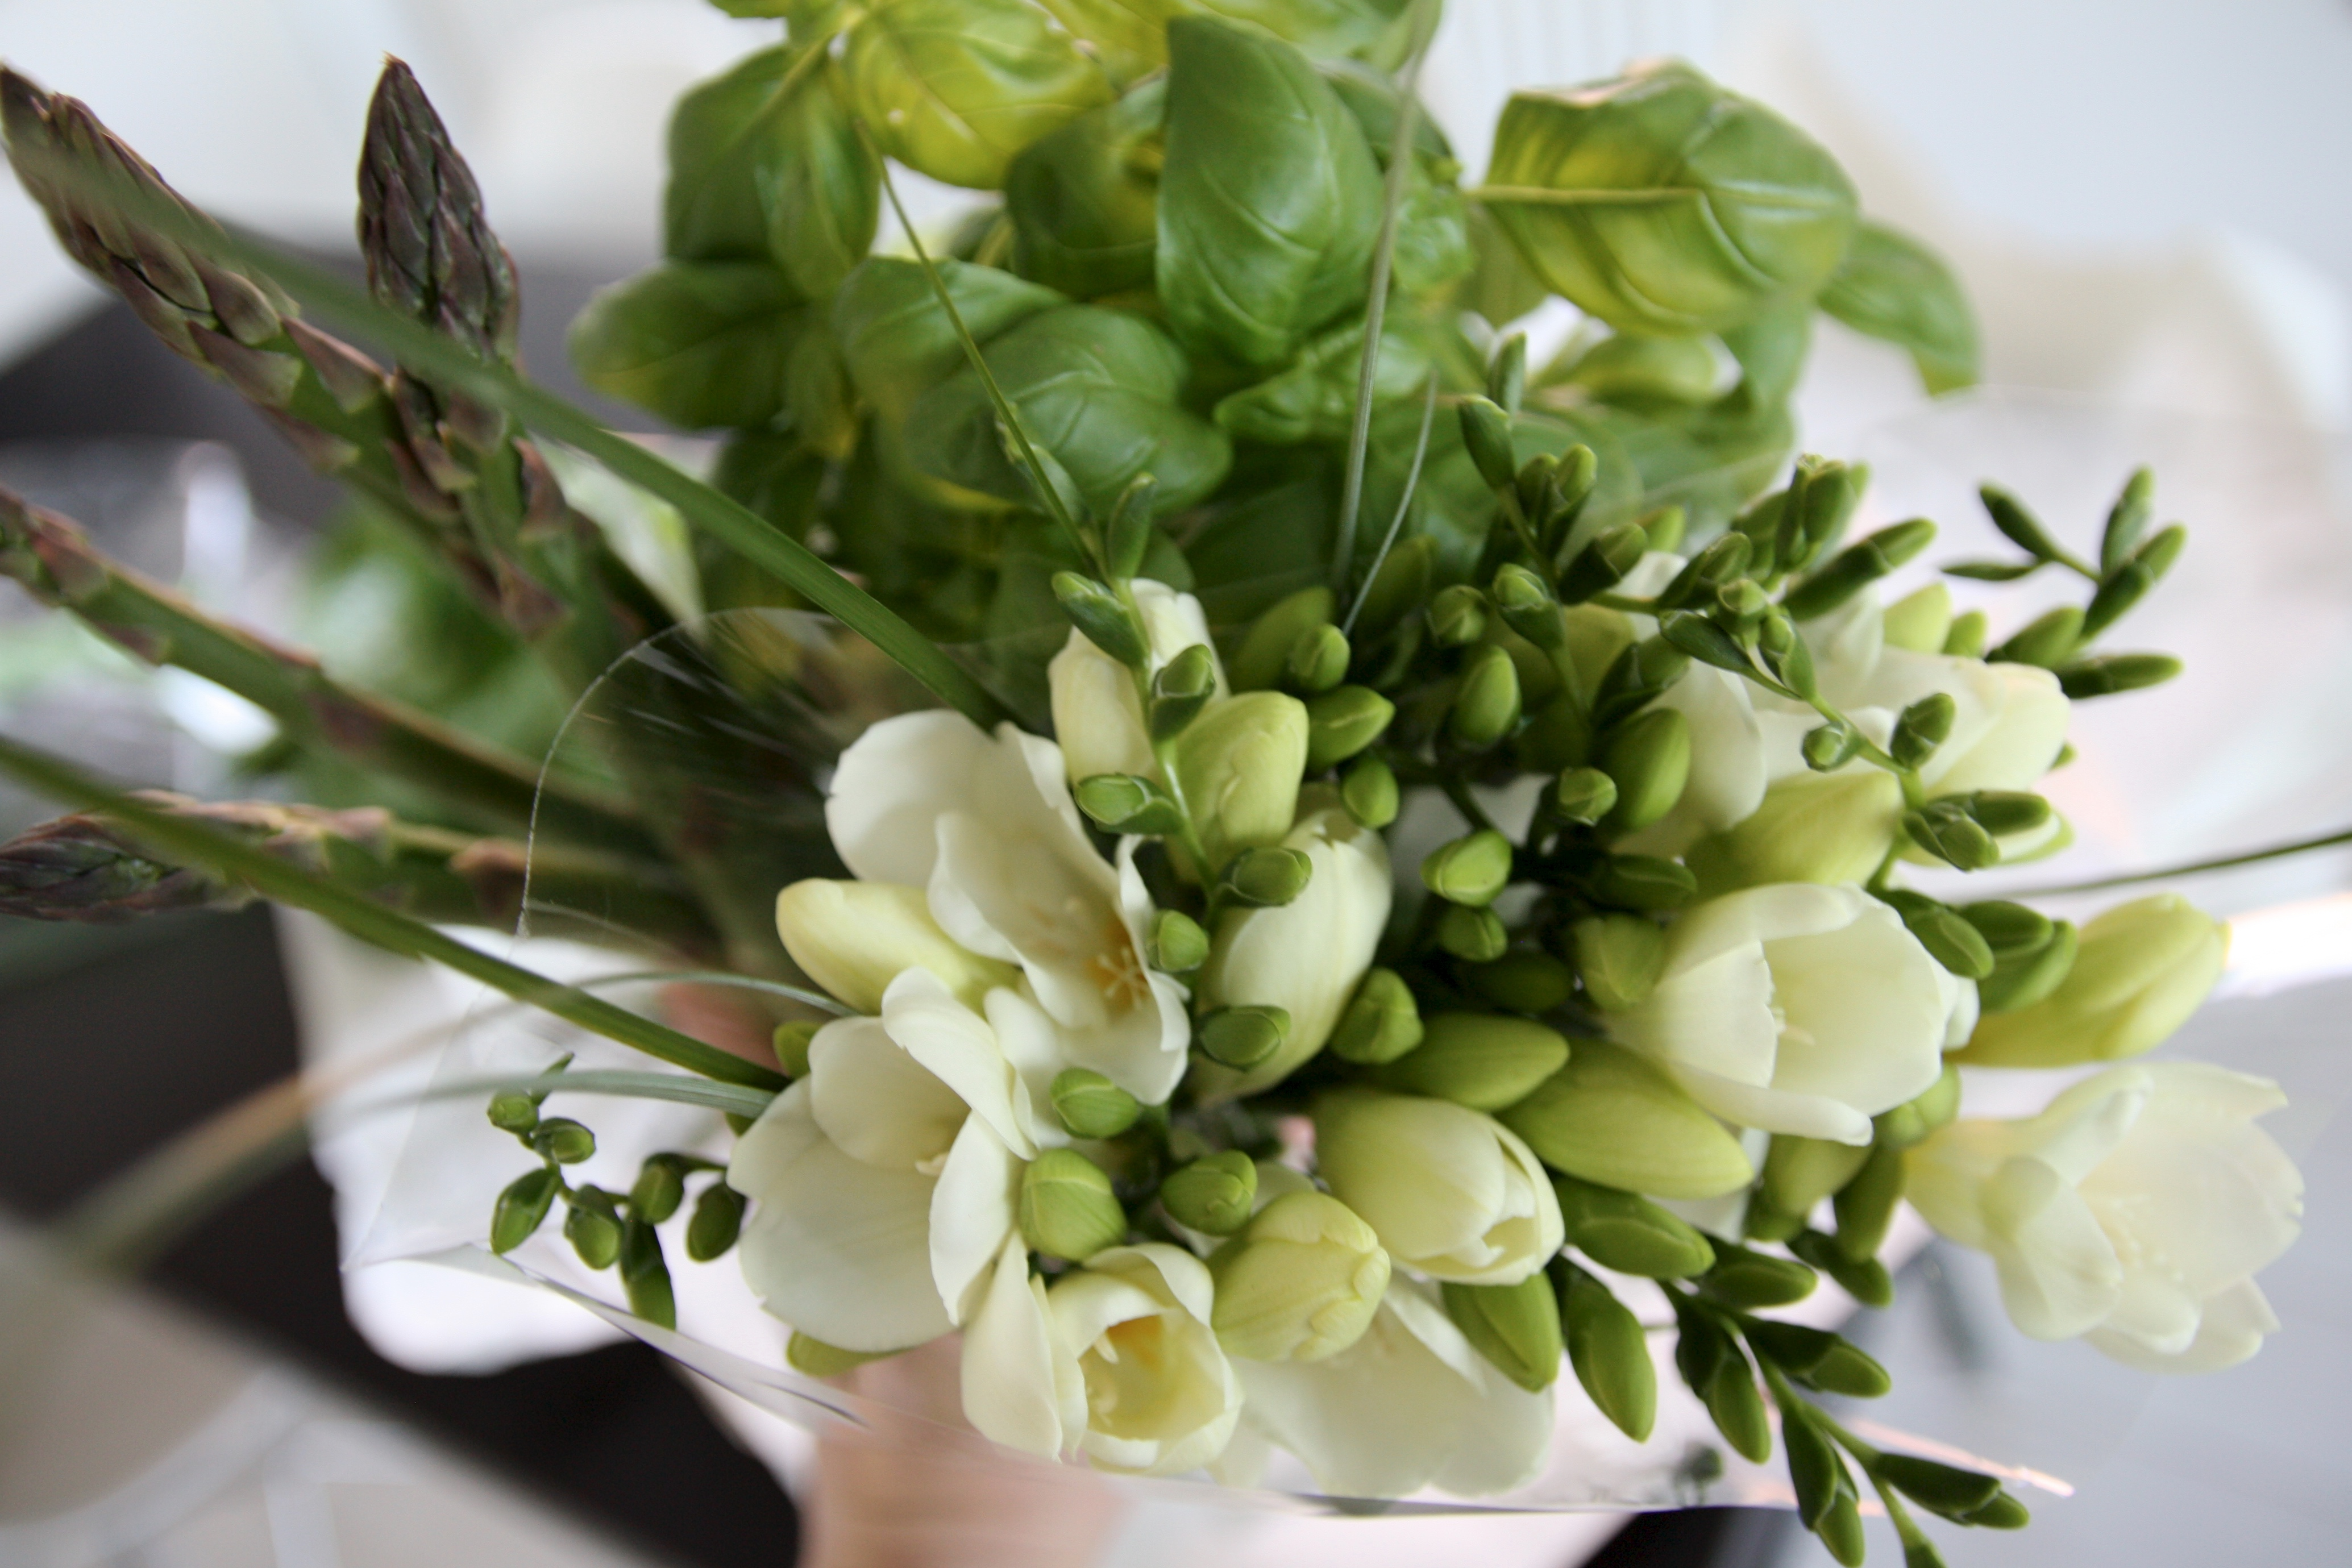 Eat your greens and buy yourself flowers